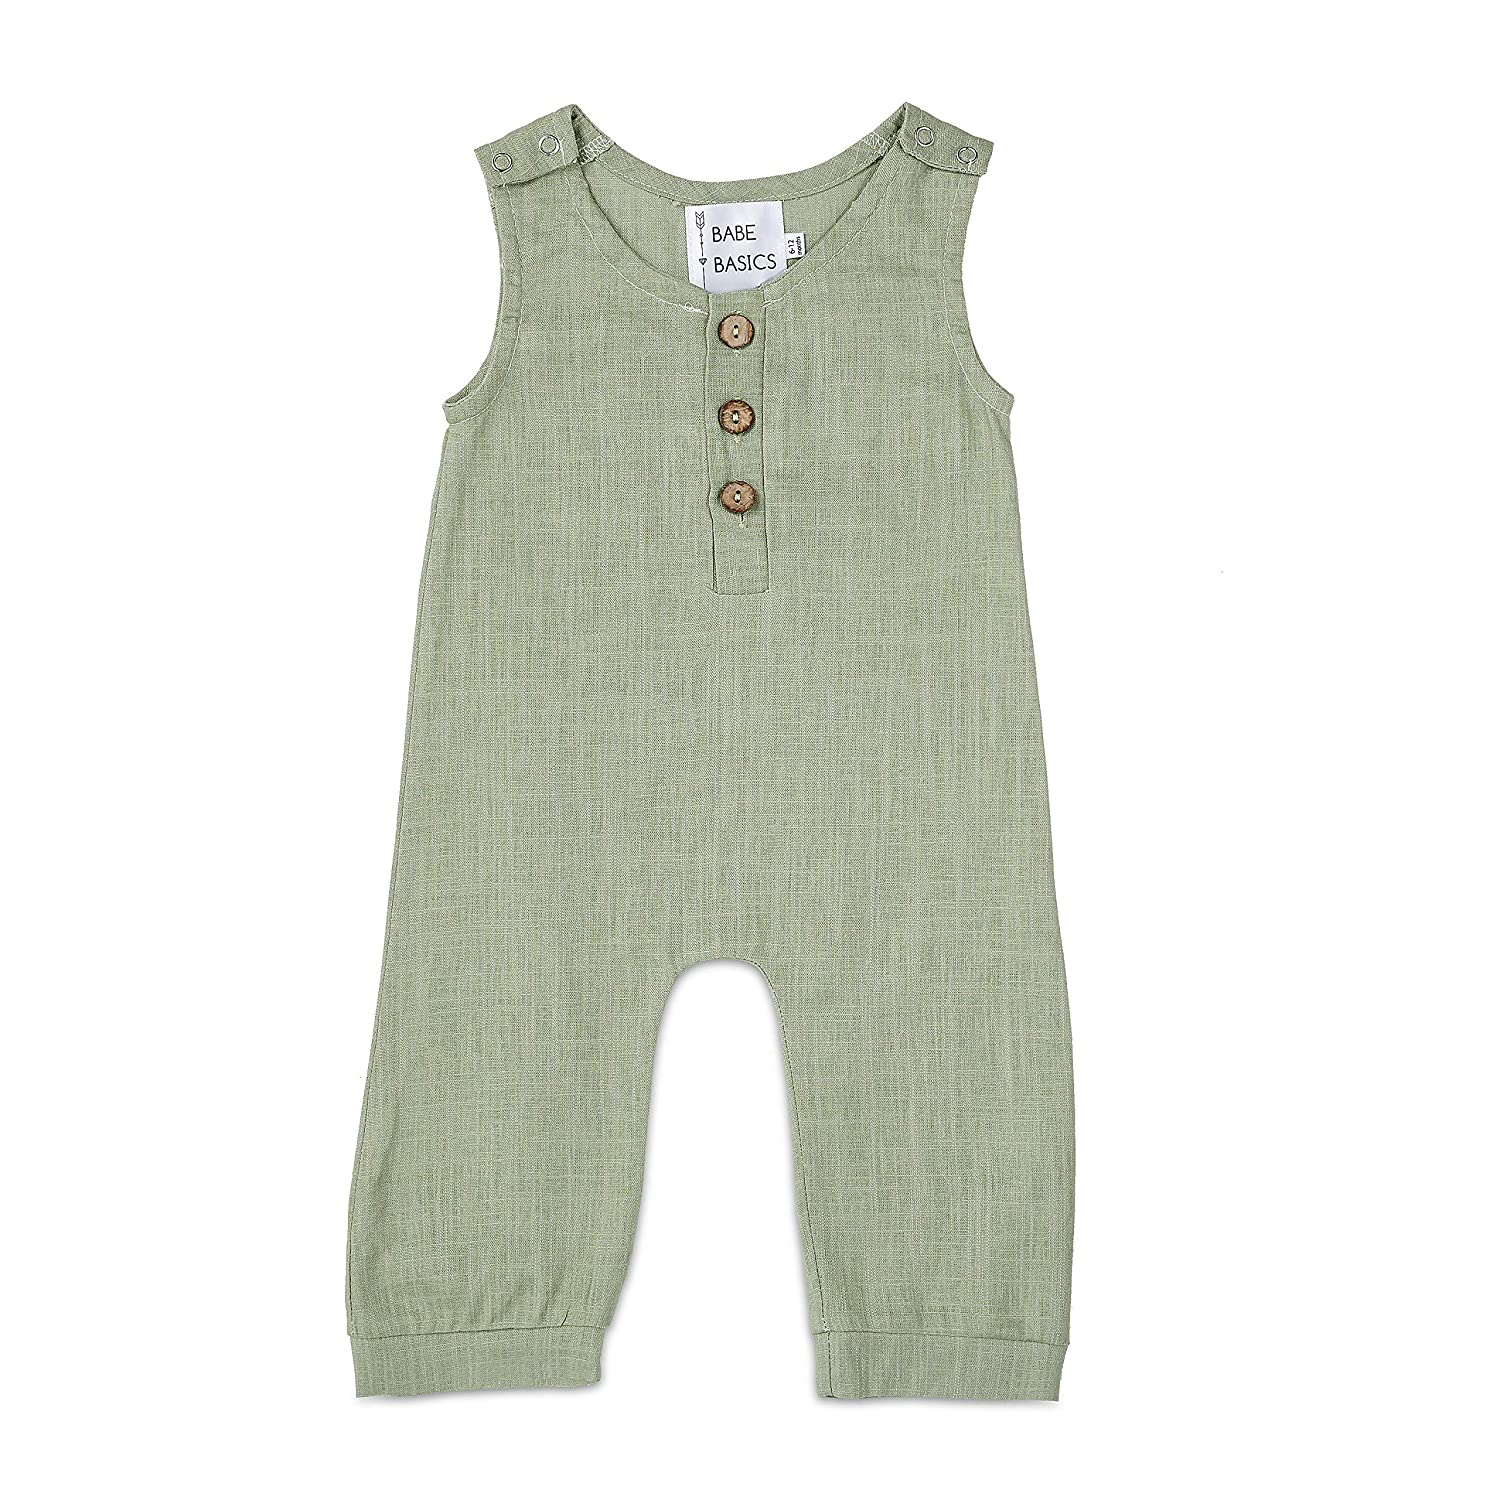 Spring Photoshoot Outfit Blue Baby Boy Spring Romper Babe Basics Linen Baby Romper